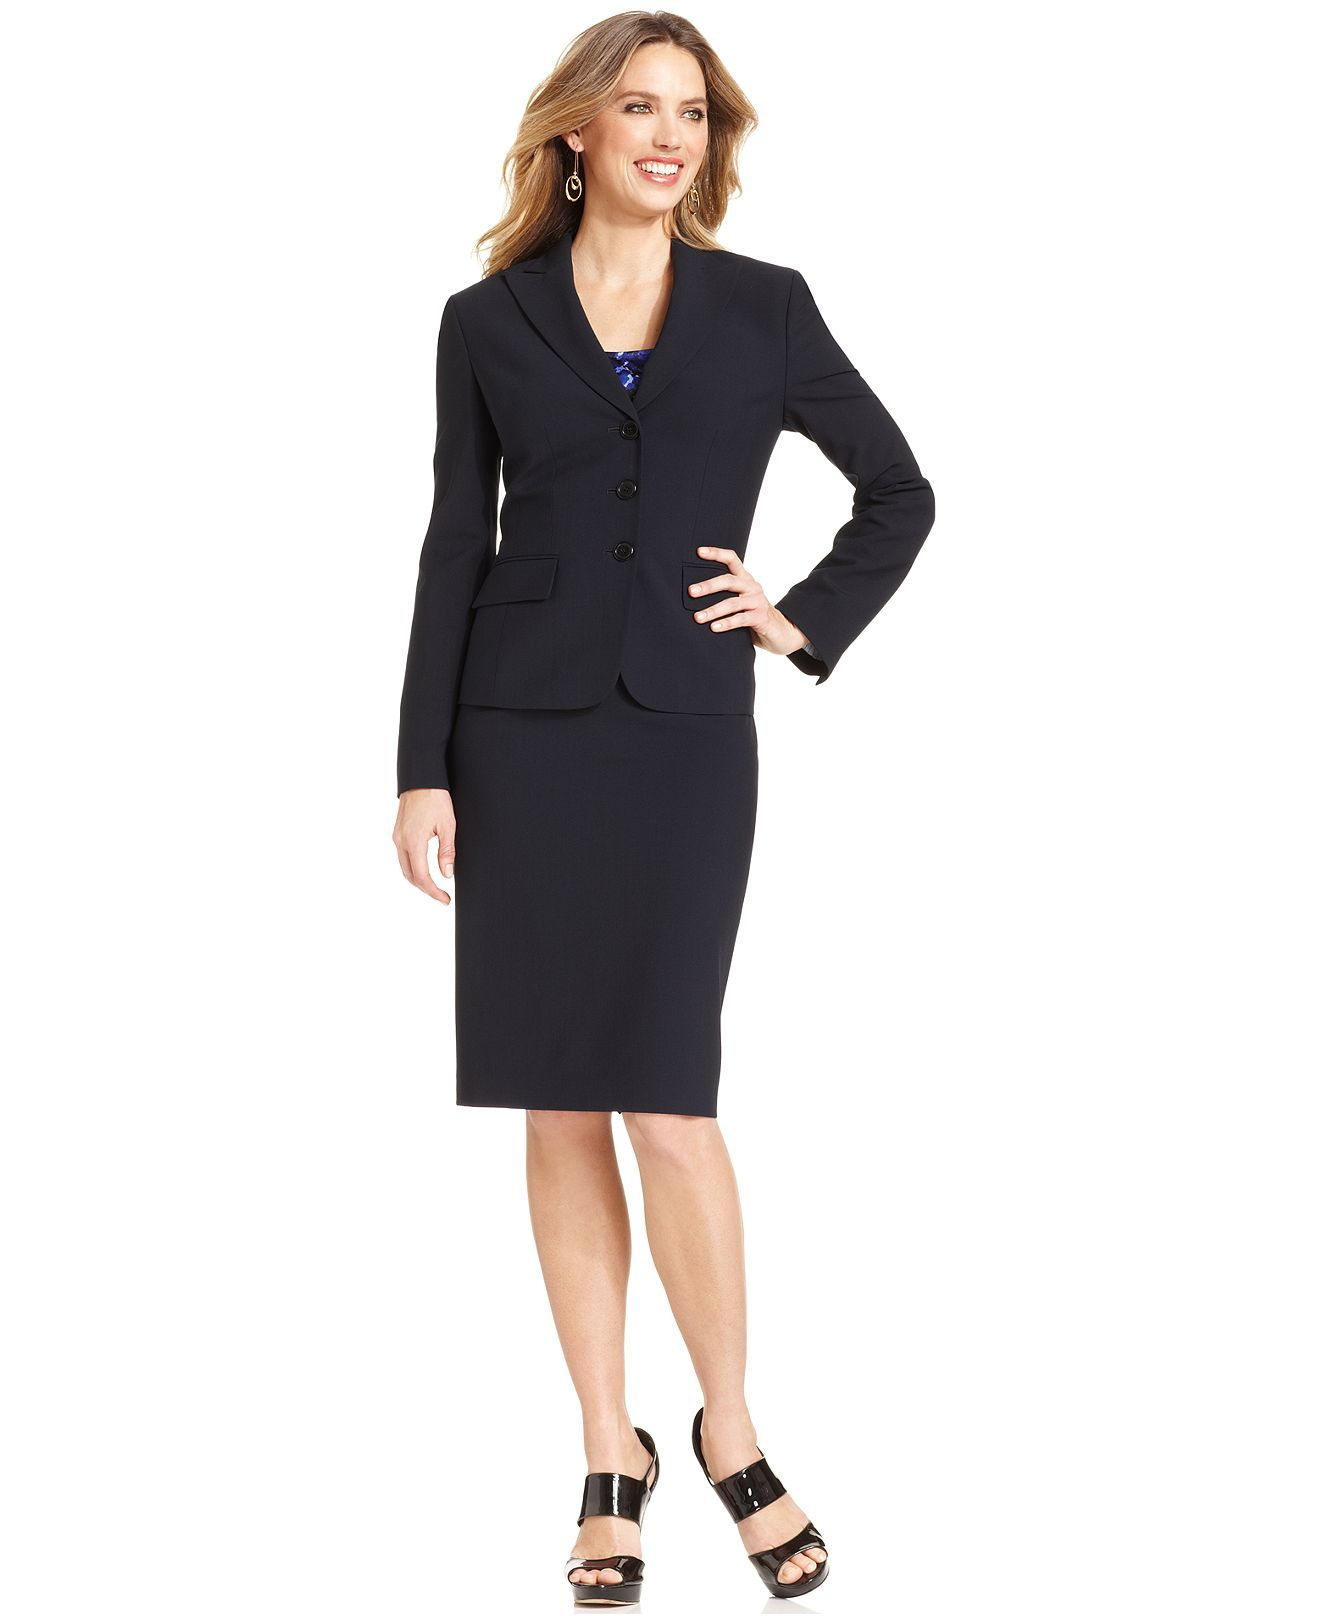 Suits & Suit Separates Looking for business attire for women? Elevate your professional wardrobe with polished ladies' suits, sleek dress pants and chic jumpsuits for women .